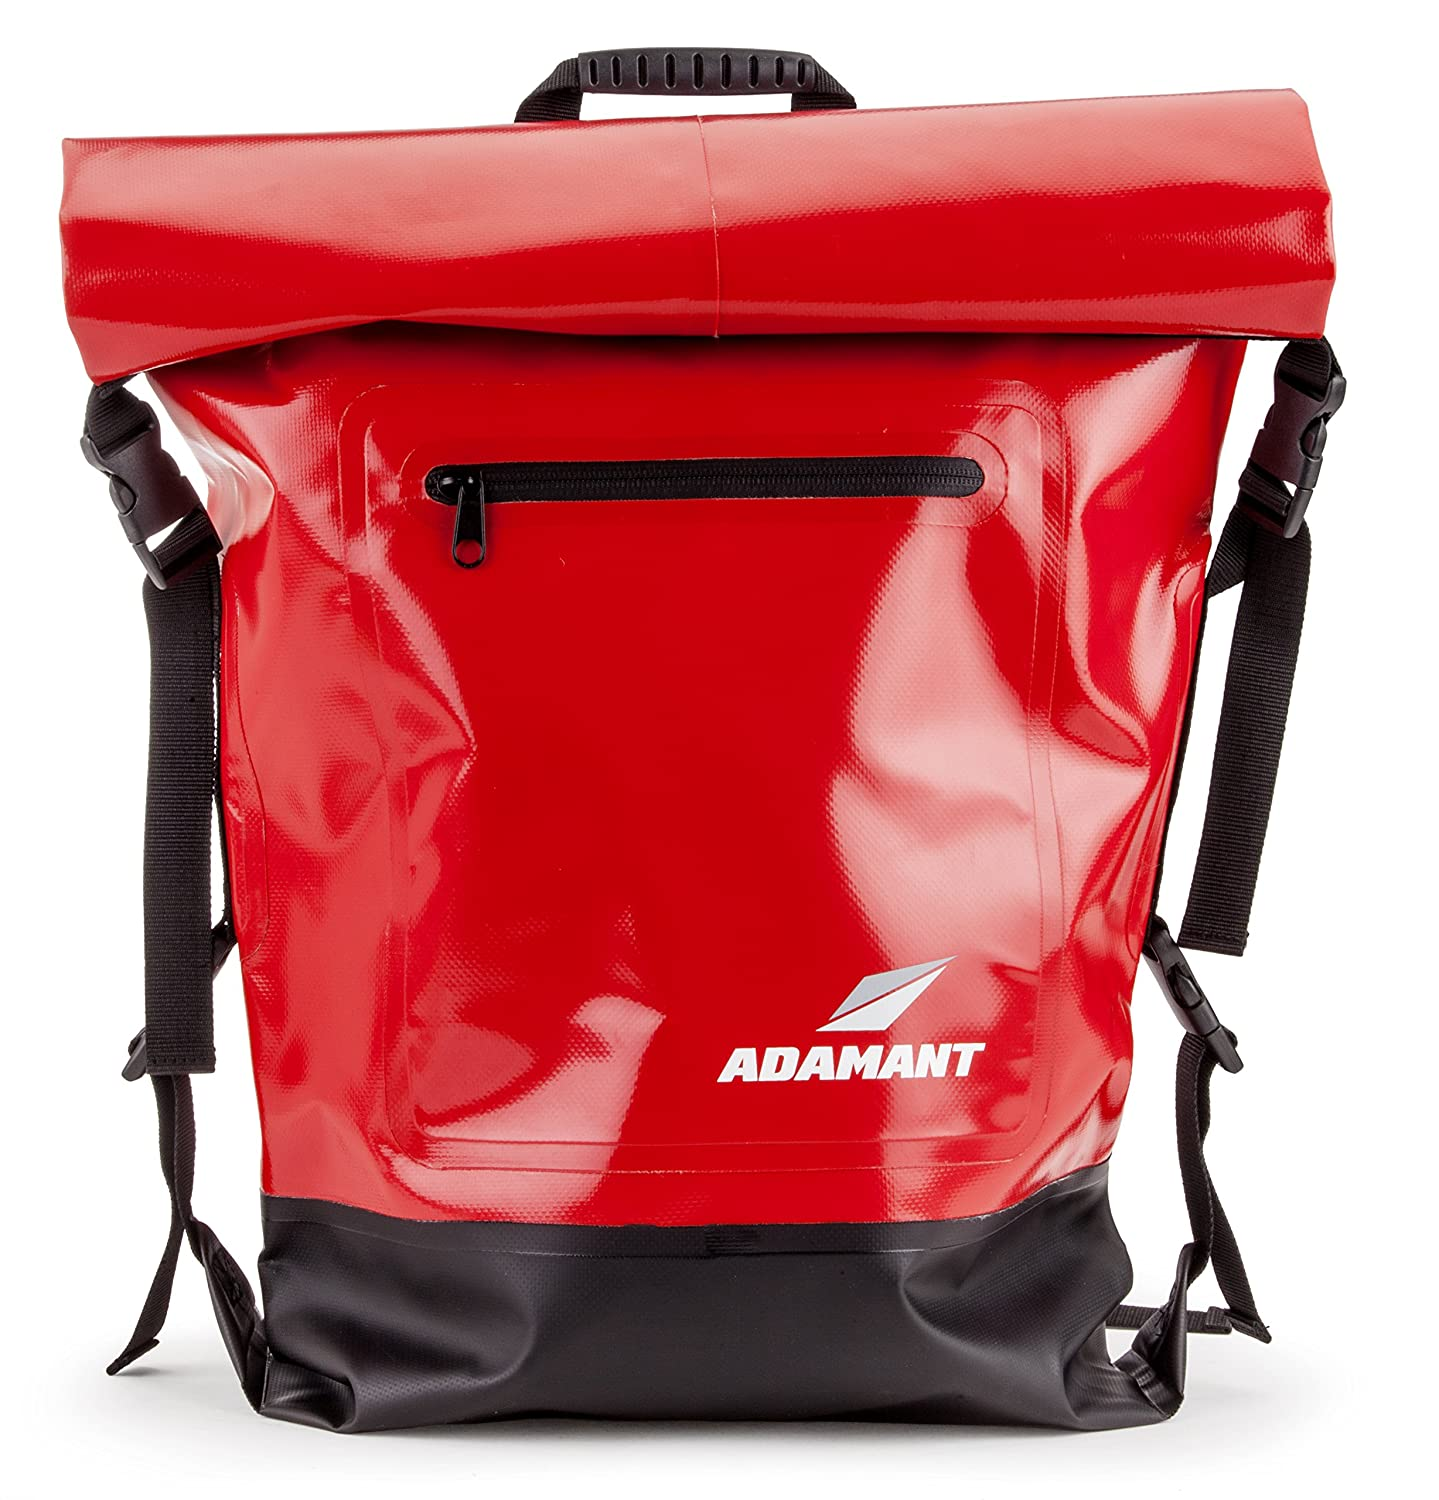 Amazon.com : Adamant - X-Core Waterproof Dry Bag Backpack, Red ...